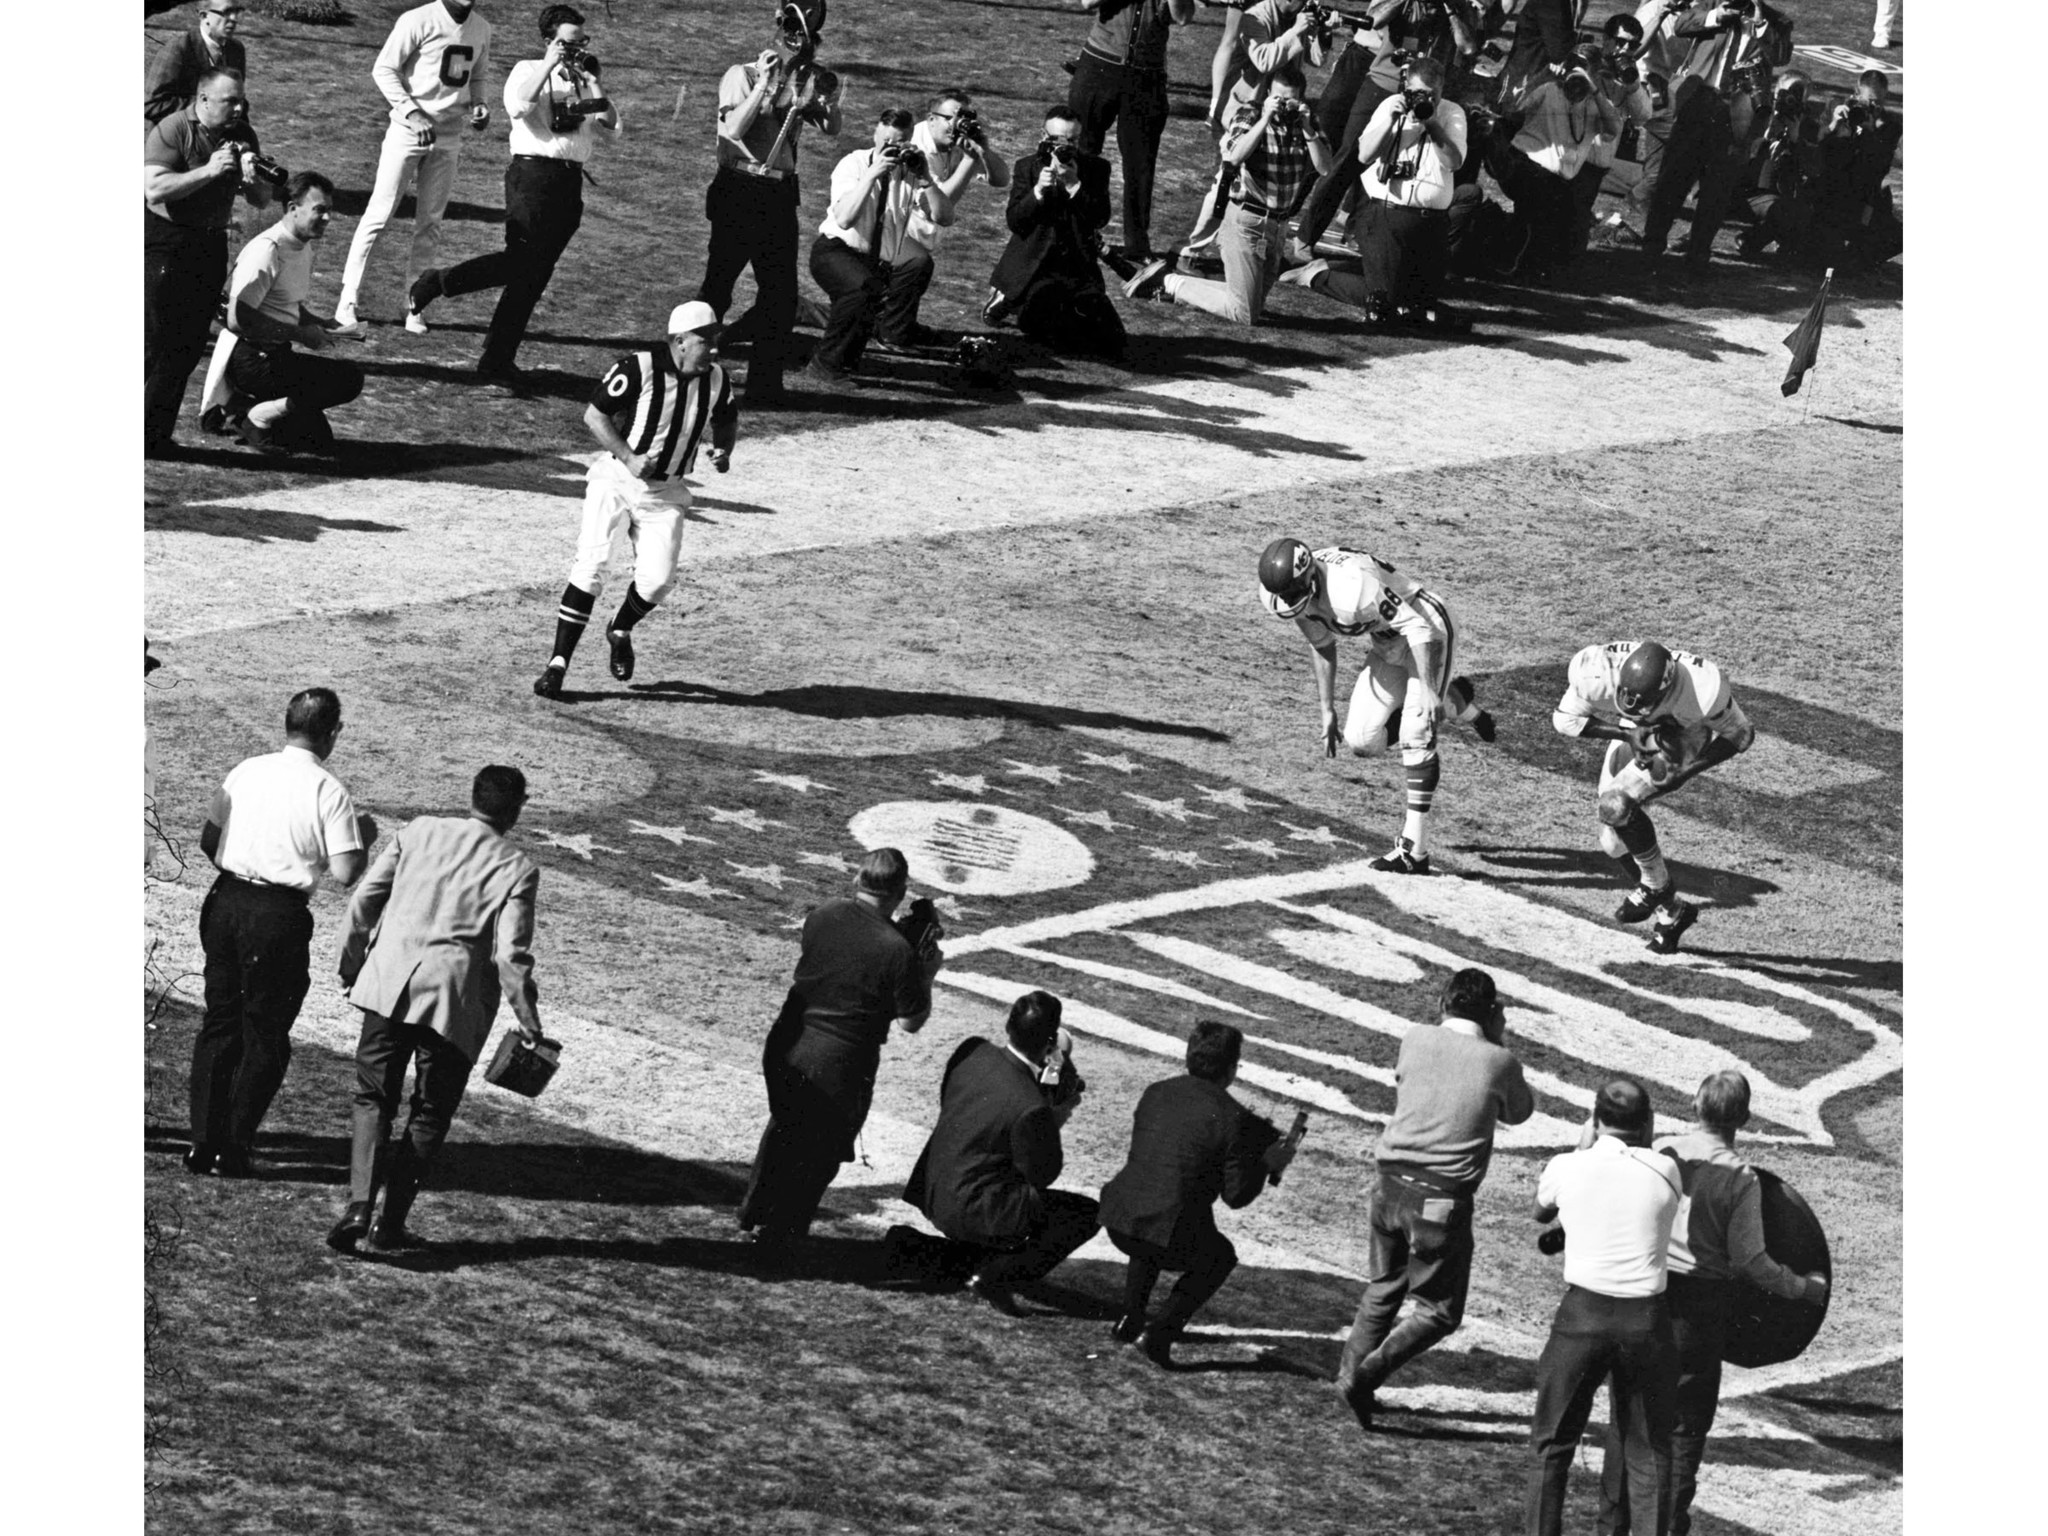 Jan. 15, 1967: Photographers take photos of Kansas City Chiefs' Curtis McClinton, player on right, a